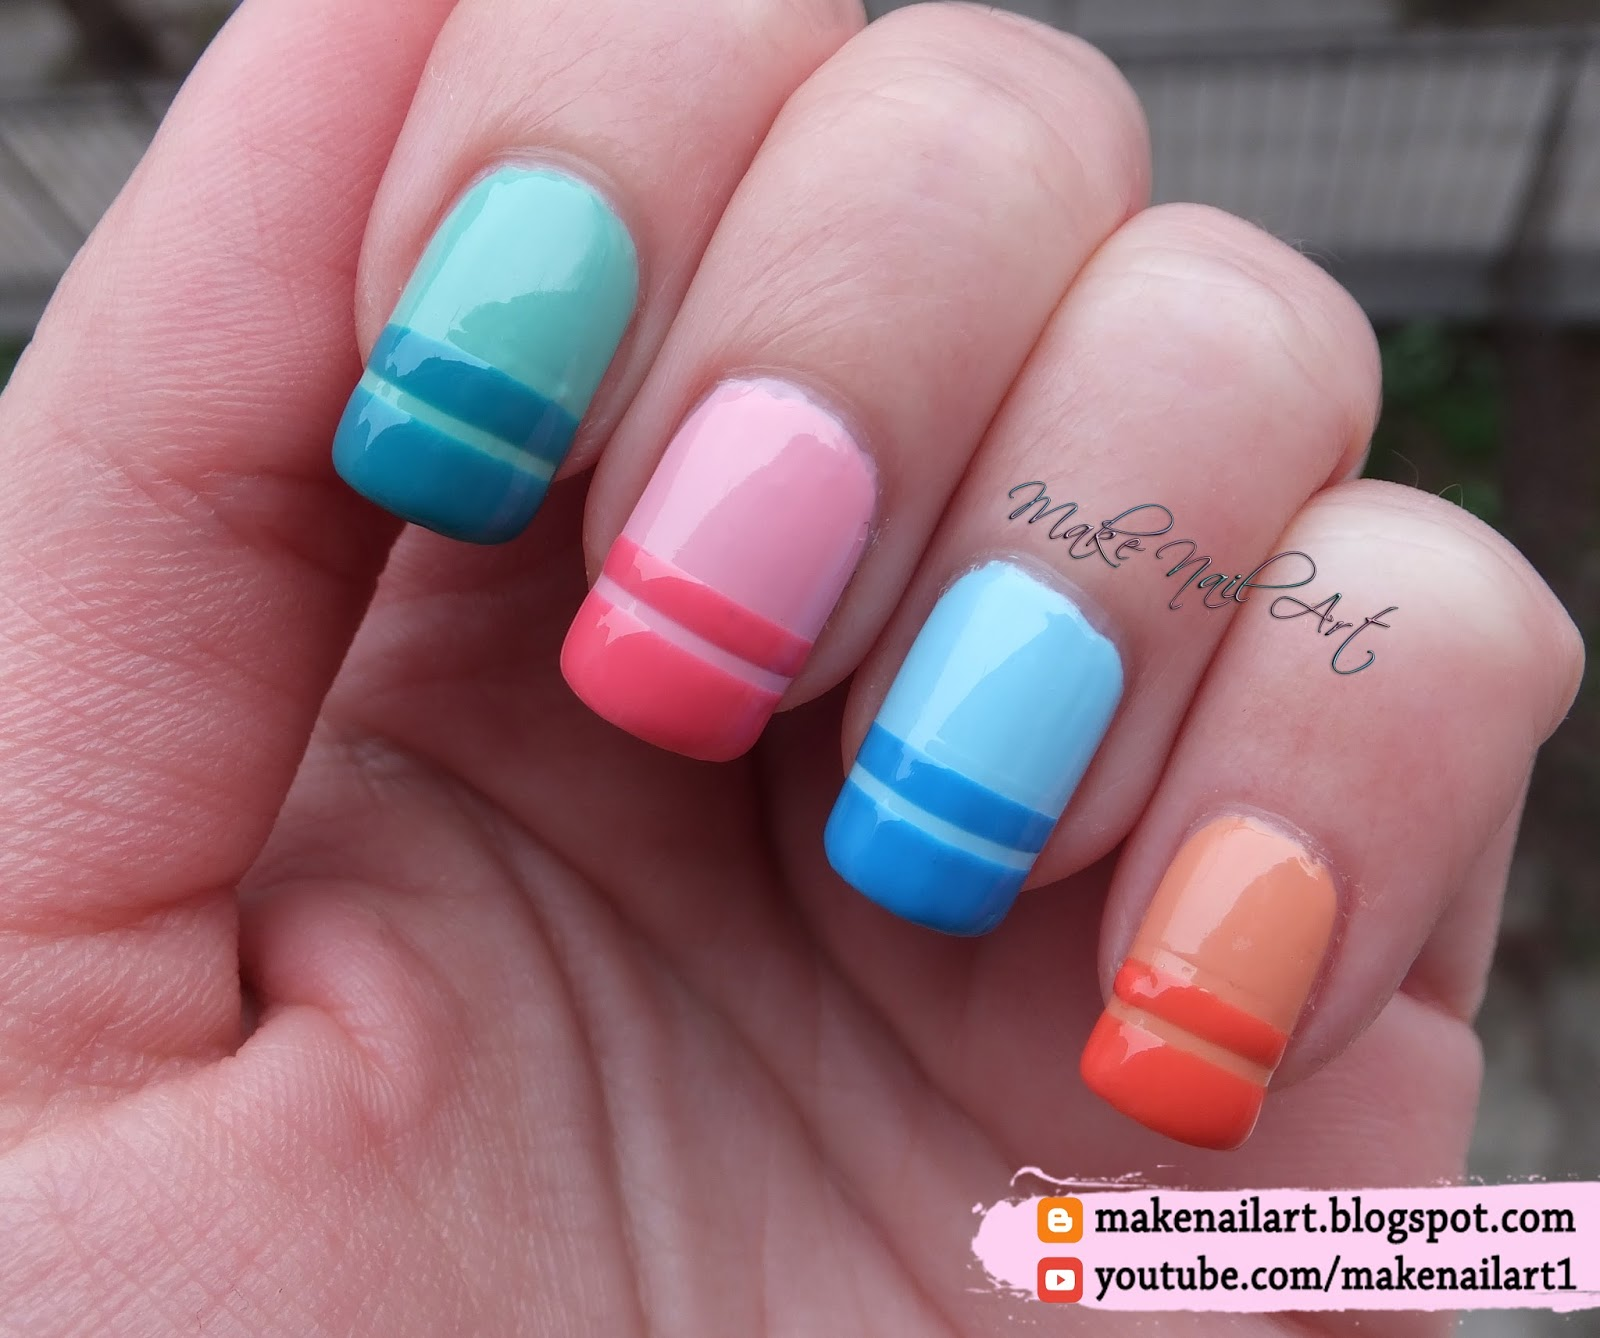 Make Nail Art: Spring / Easter Pastel French Manicure Nail ...